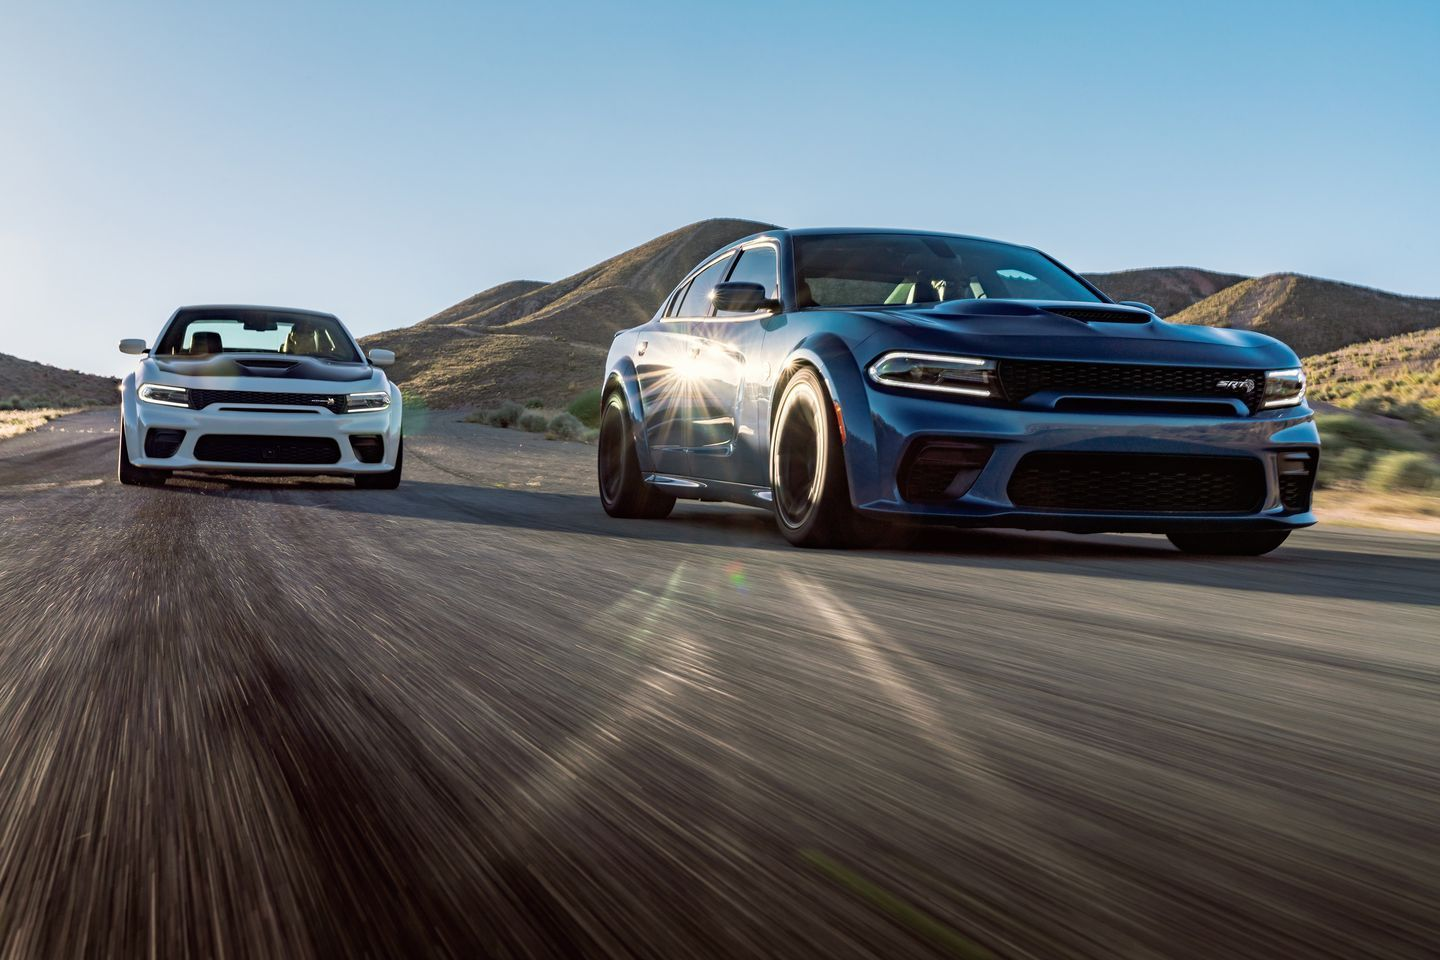 Pin By Lion Heart Motivation On Dodging With Images Dodge Charger Charger Srt Hellcat Srt Hellcat